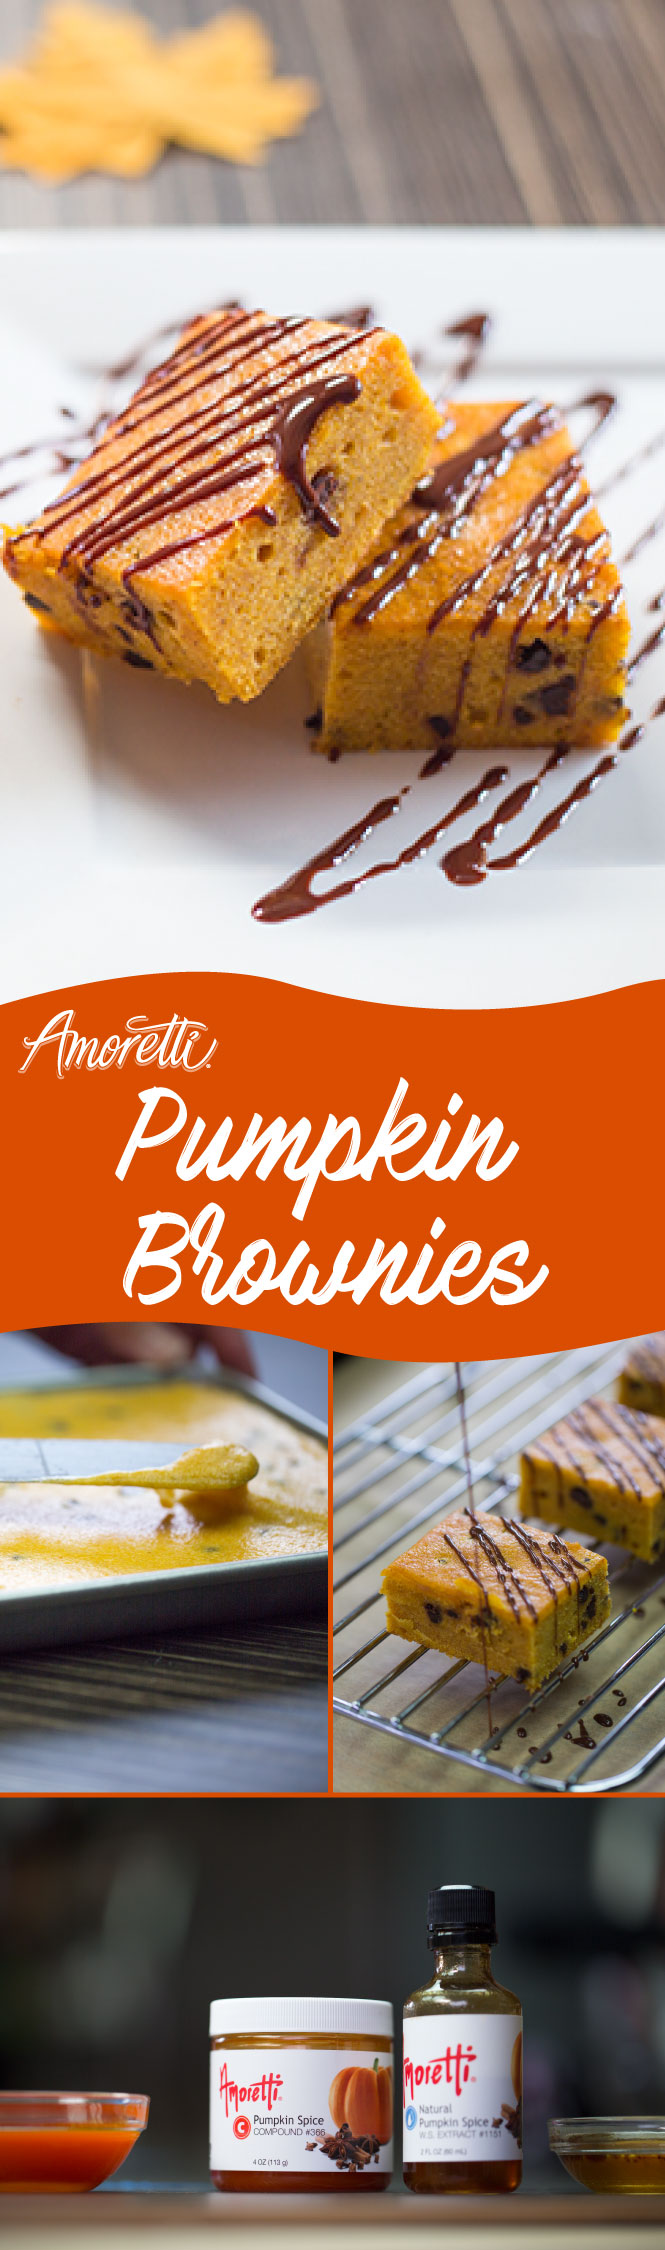 You can really taste the pumpkin flavor in these brownies!